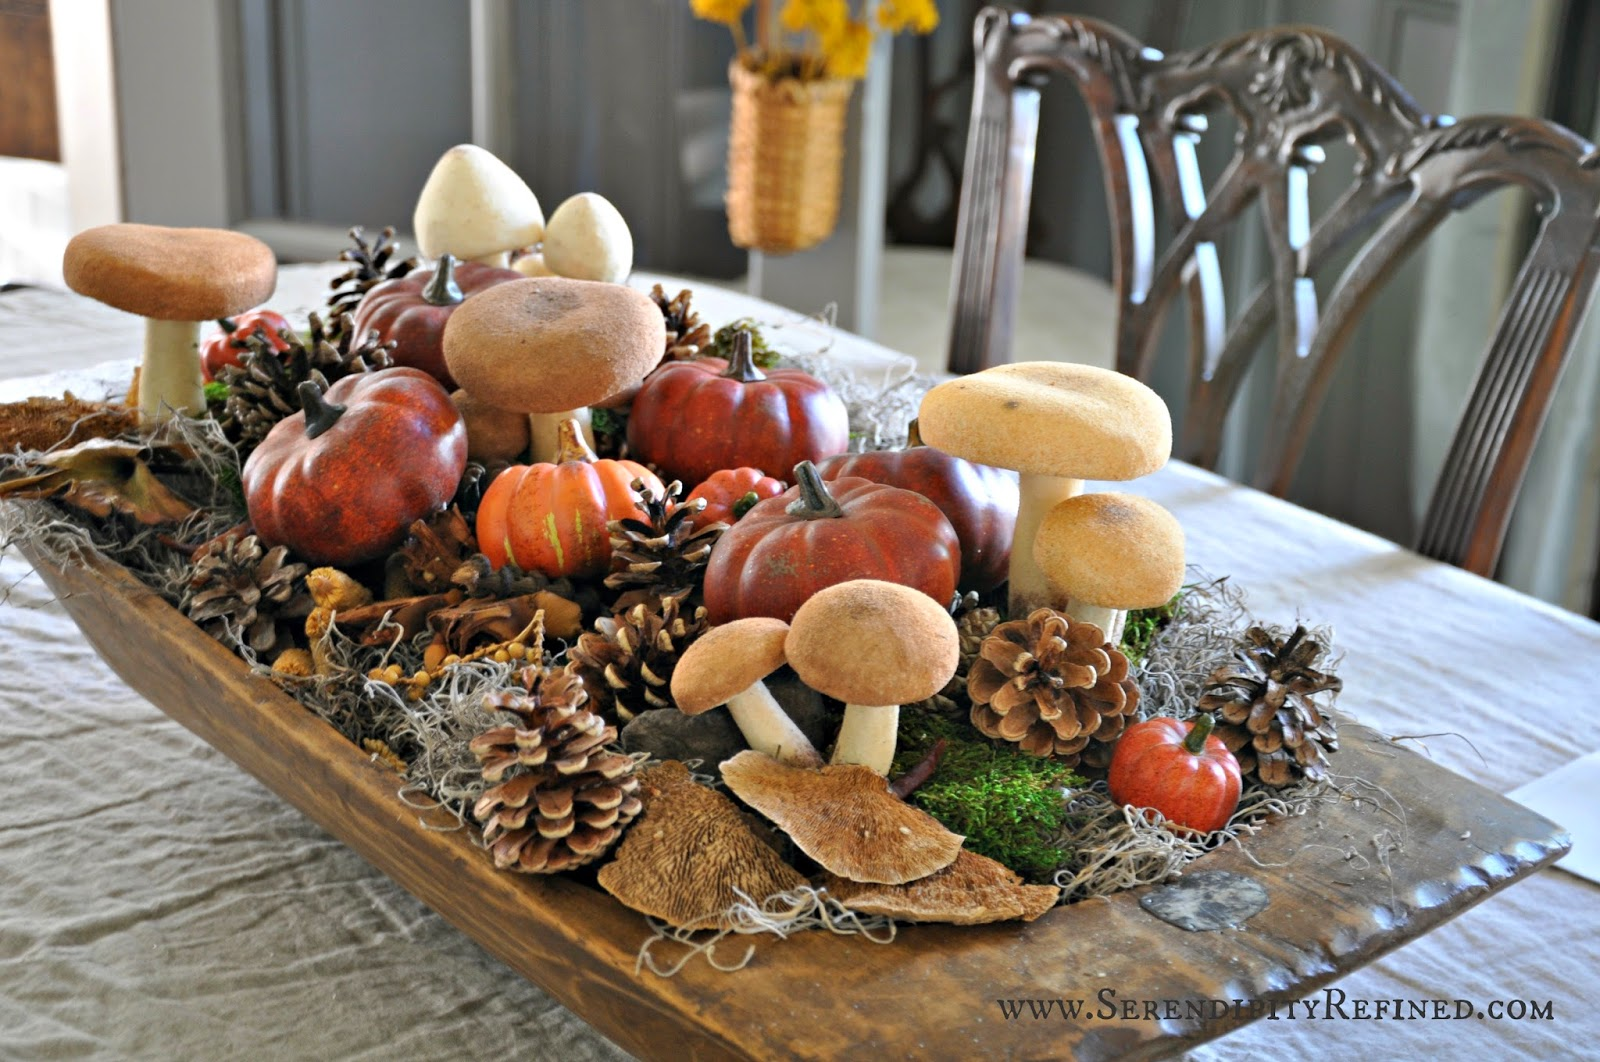 Cozy Up 21 Warm amp Friendly Fall Decorating Ideas